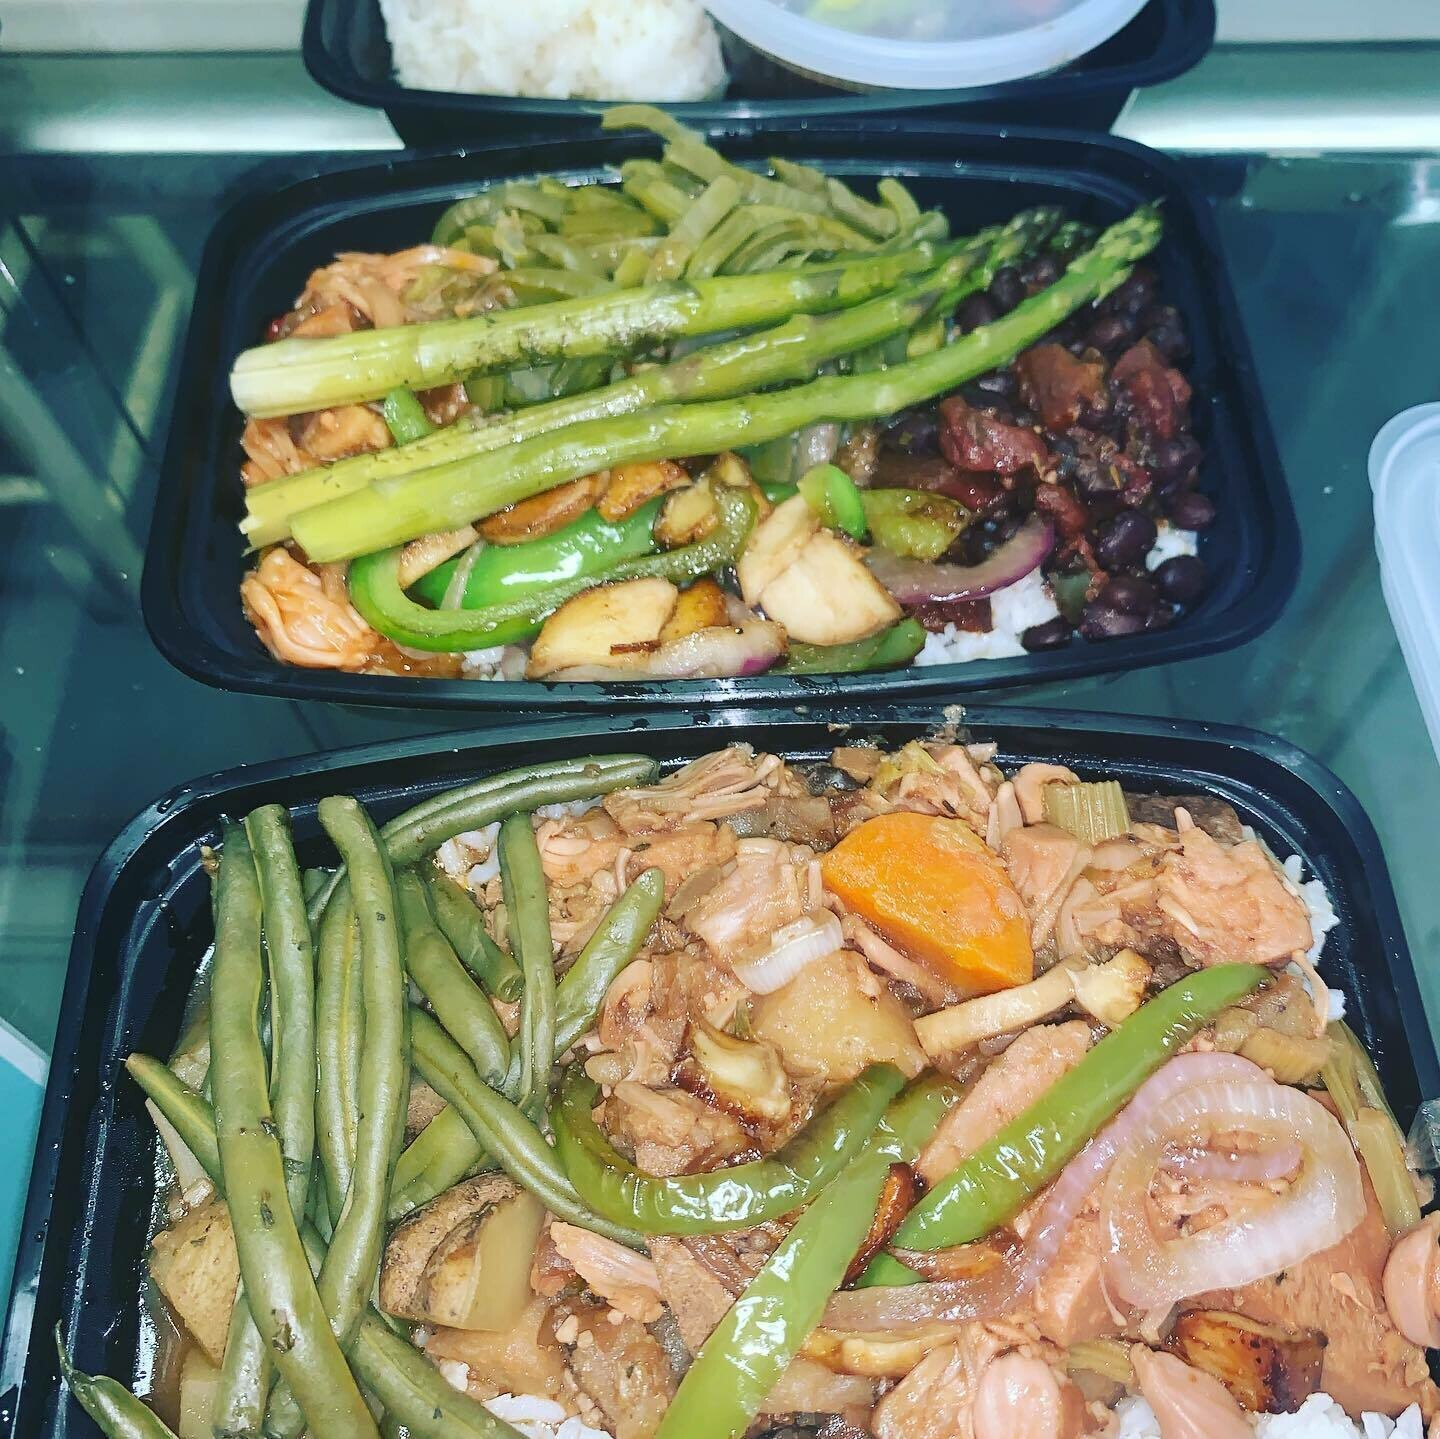 3 Days - 3 Meals / Day